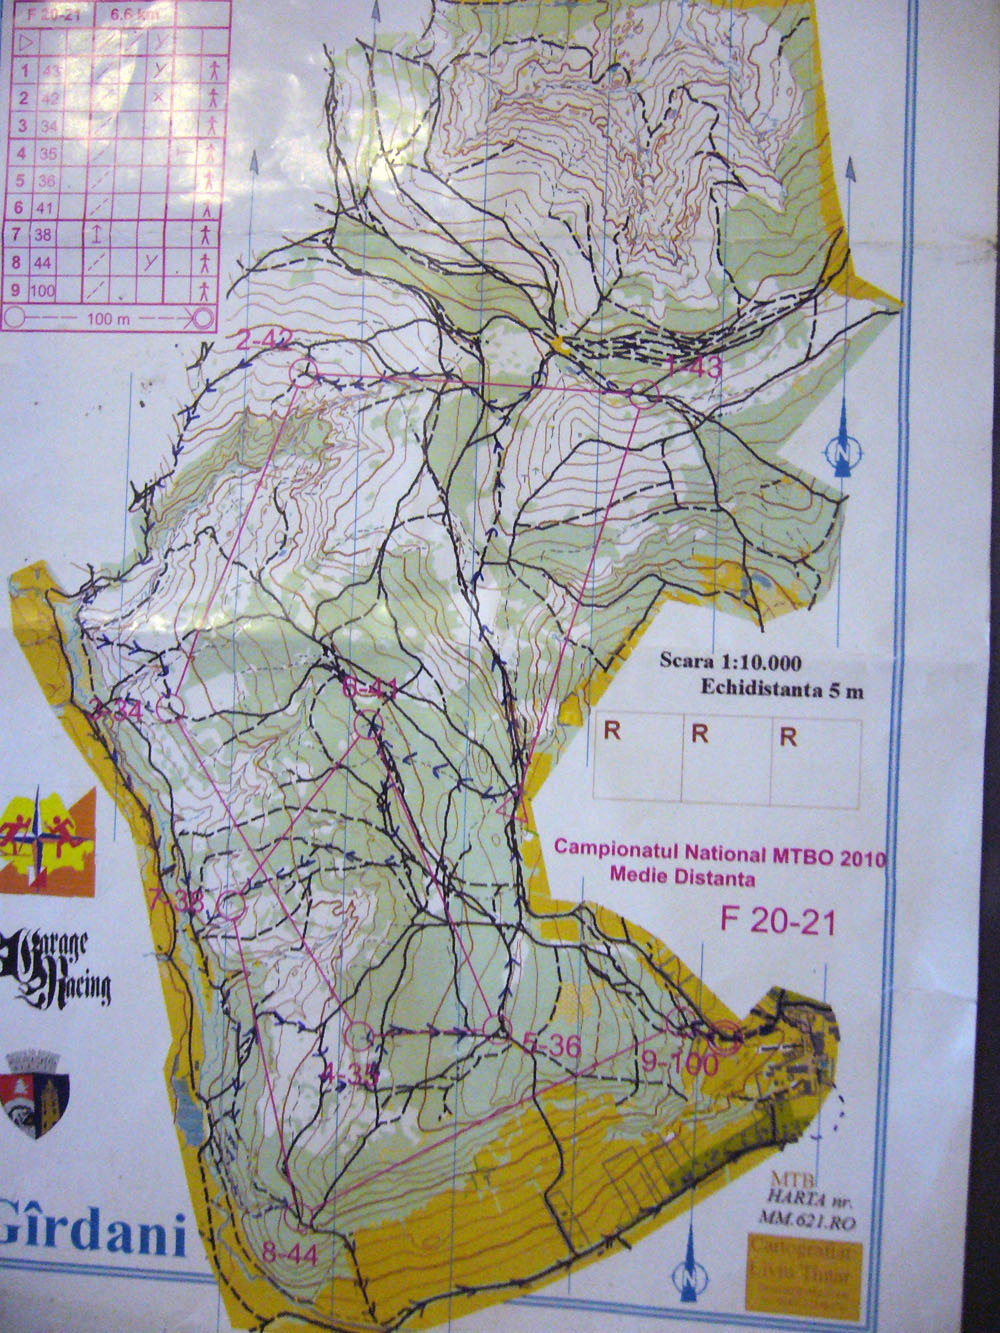 National Championship Orienteering with Mountain Bike 09-11.07.2010 - Baia Mare